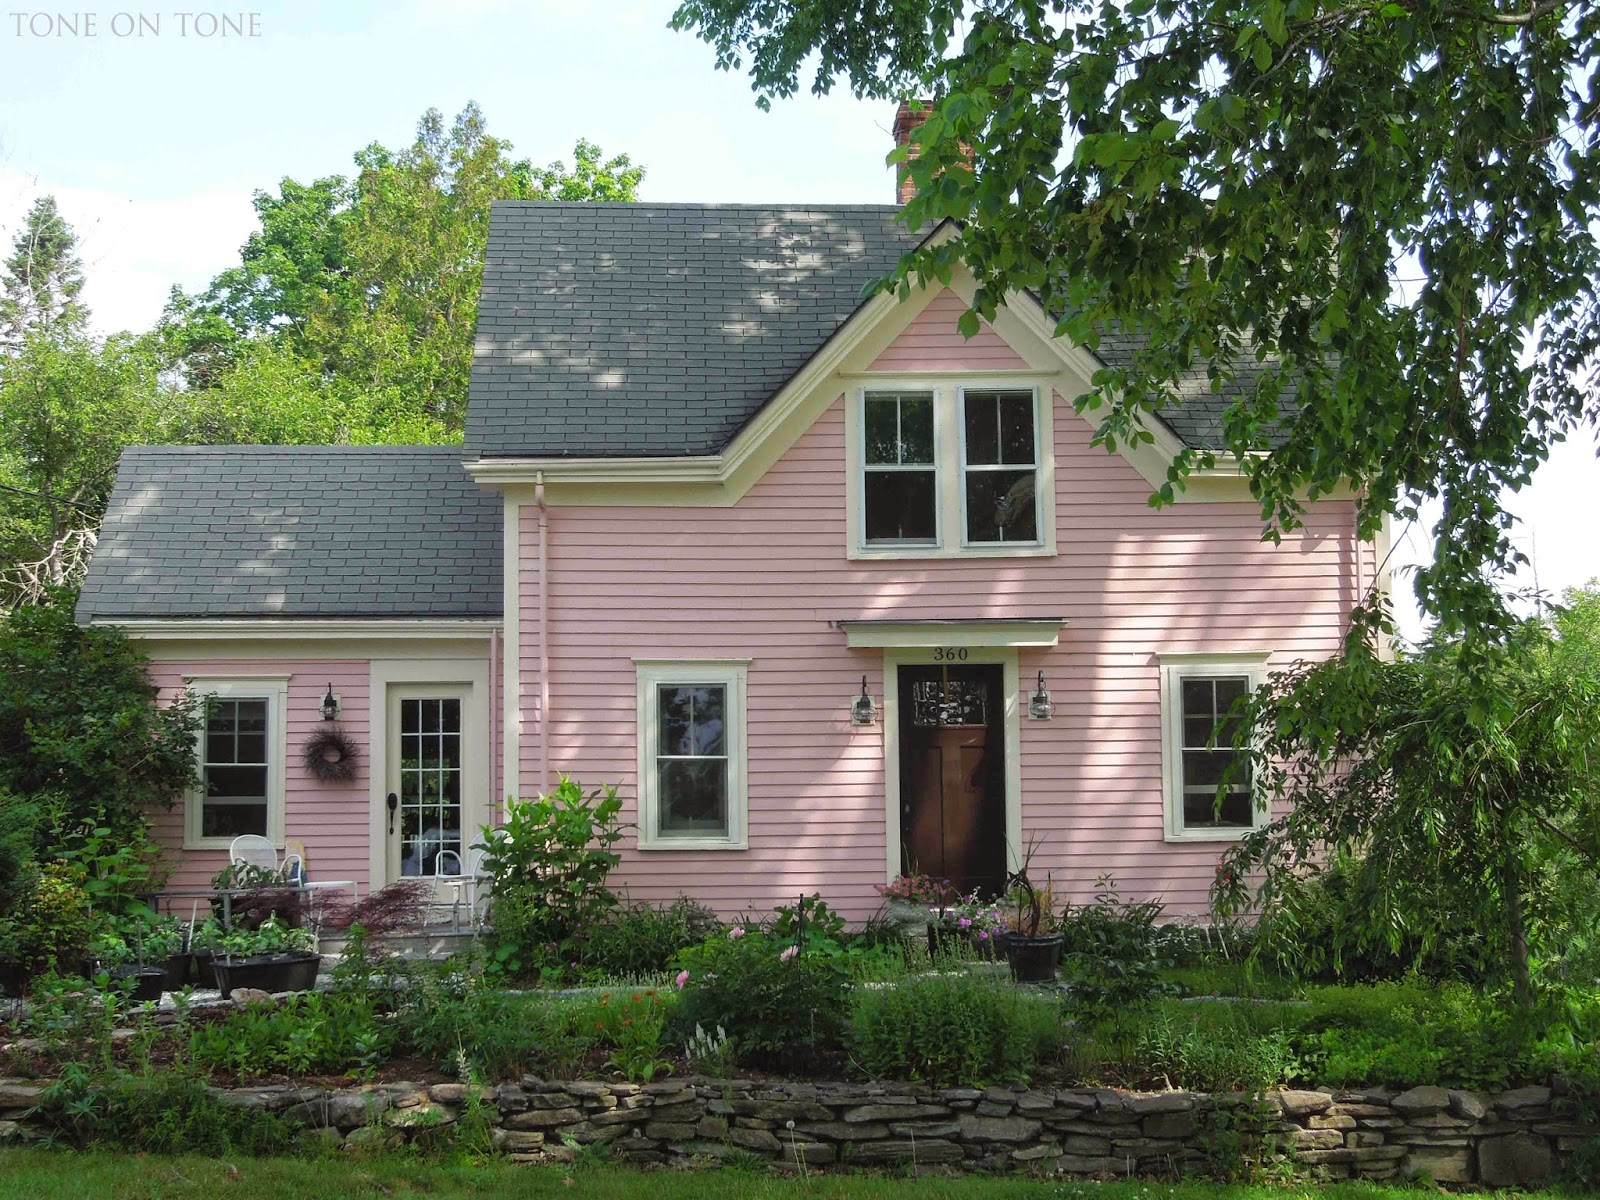 1000 images about homes on pinterest small houses tiny for Little cottage house